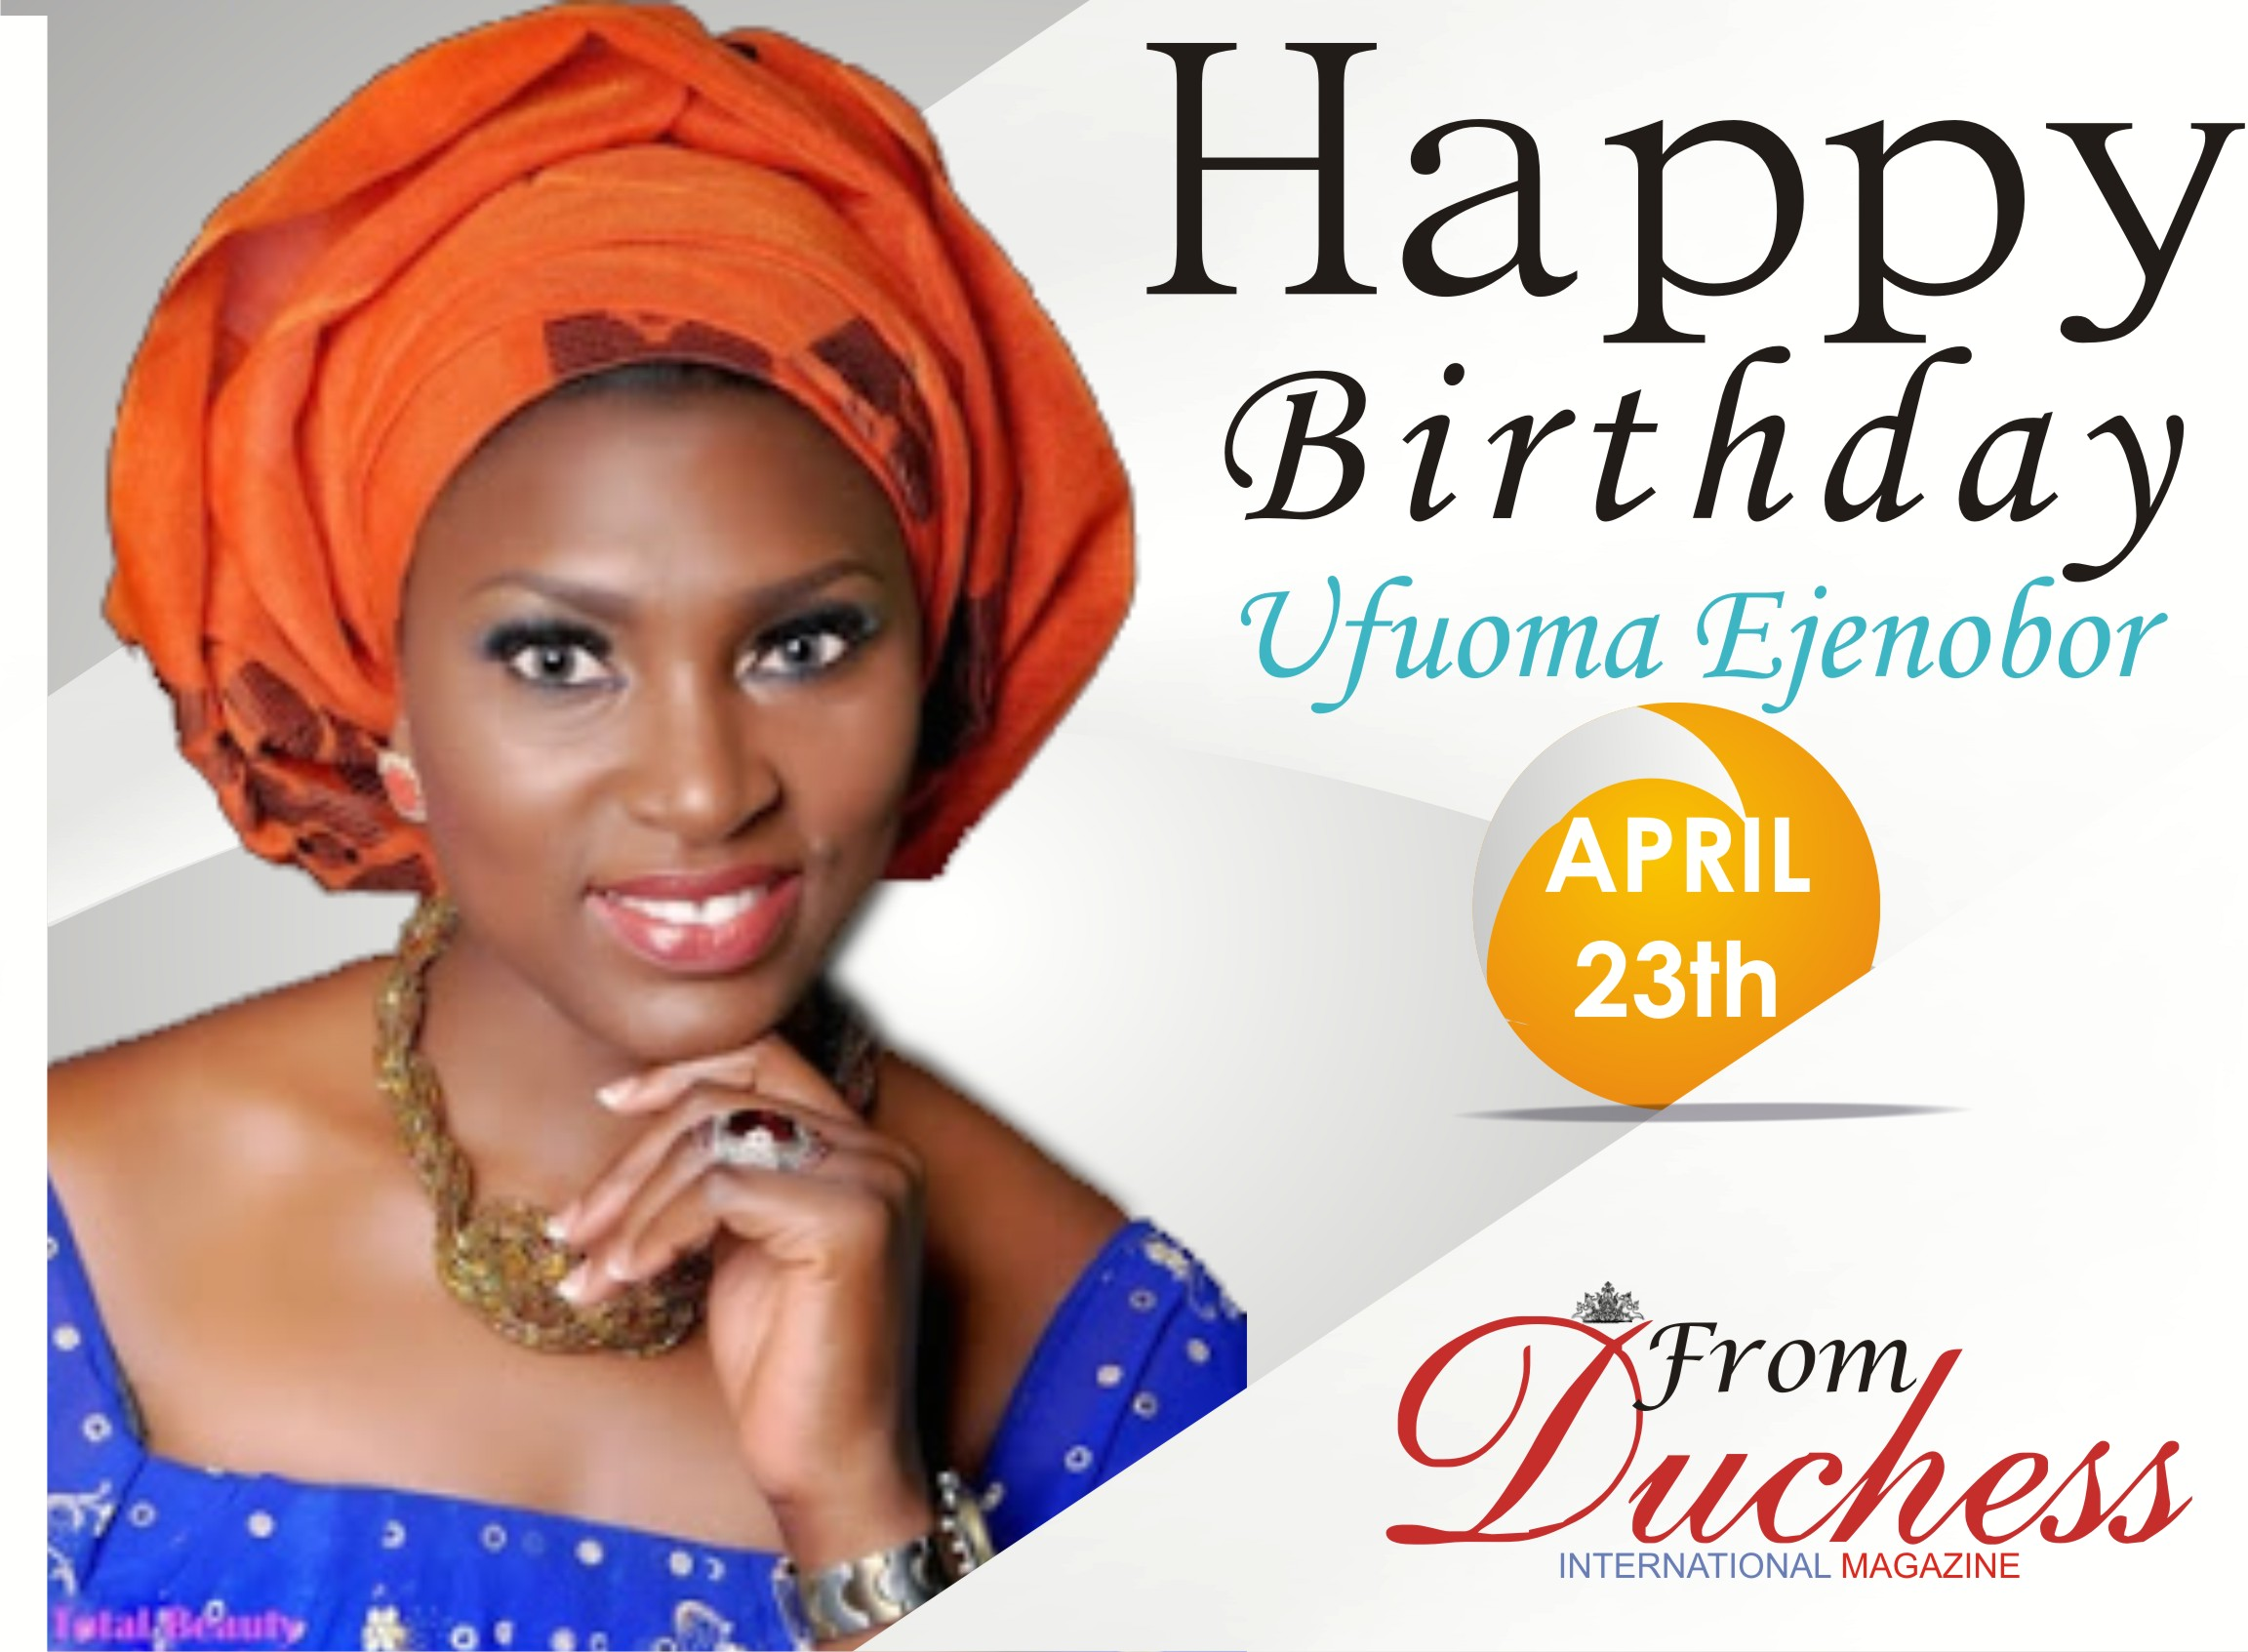 Popular Nigerian Actress Ufuoma Ejenobor is a year older today.